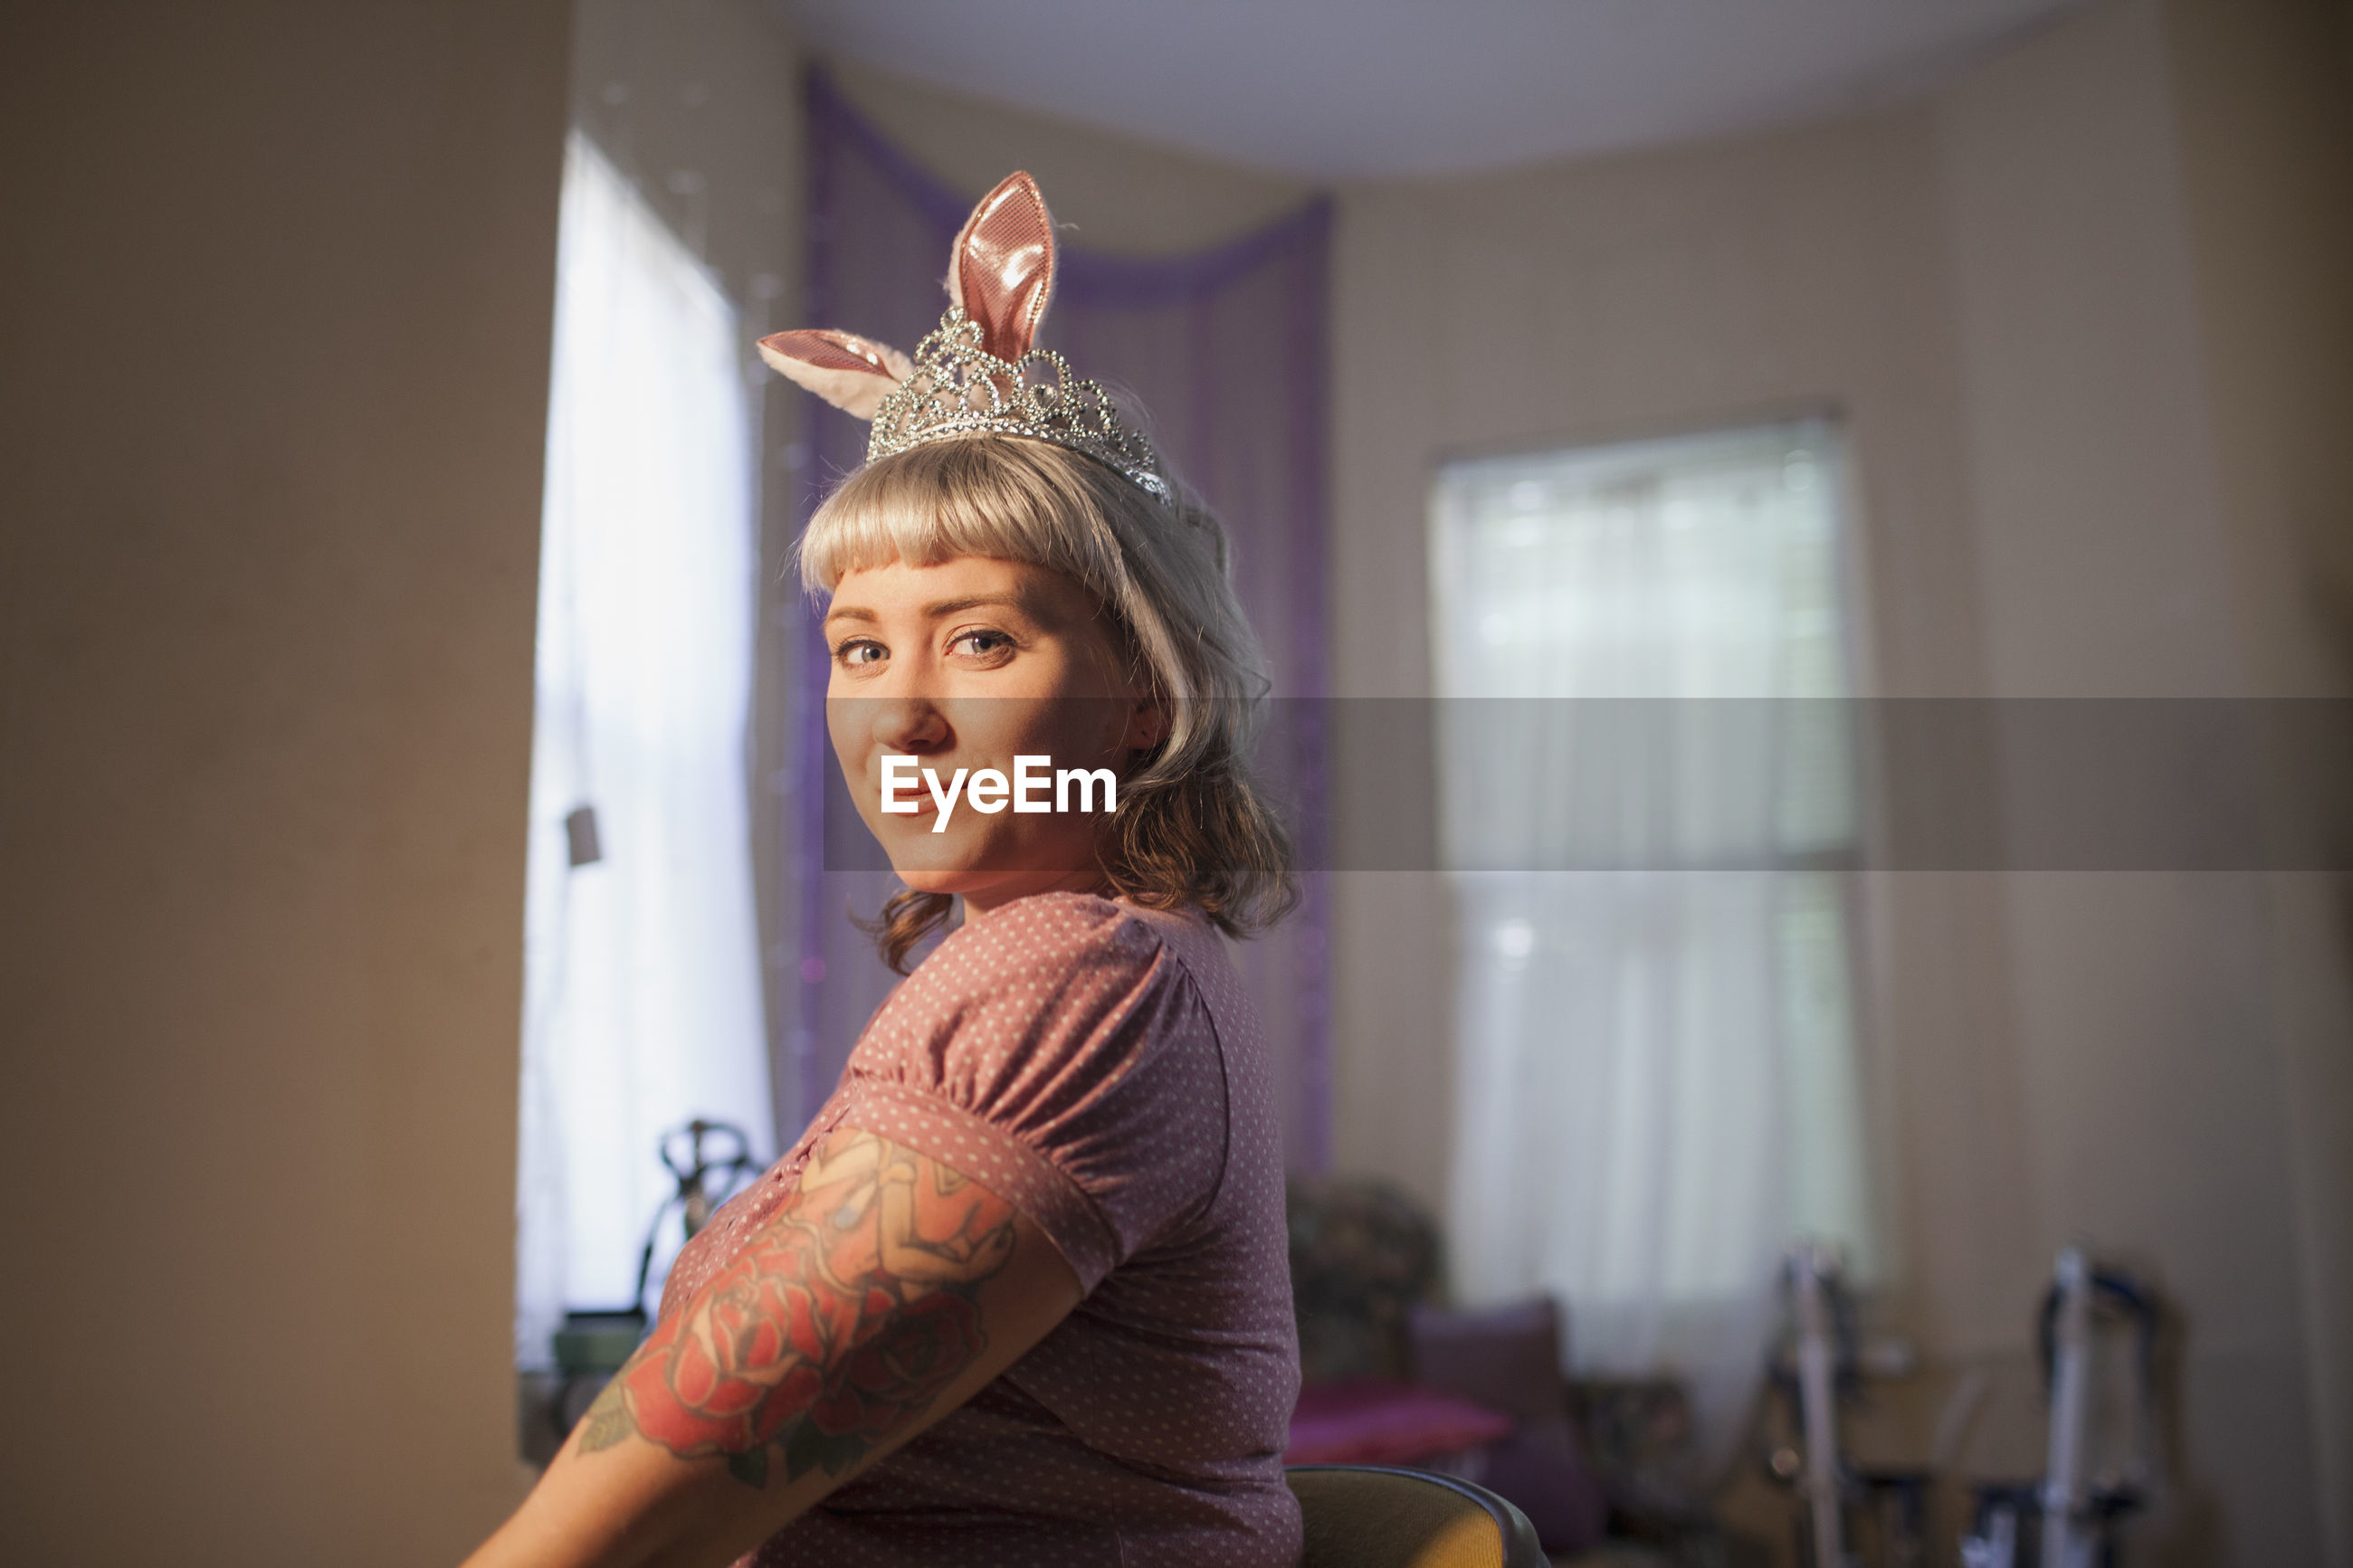 Young woman in front of mirror wearing bunny ears